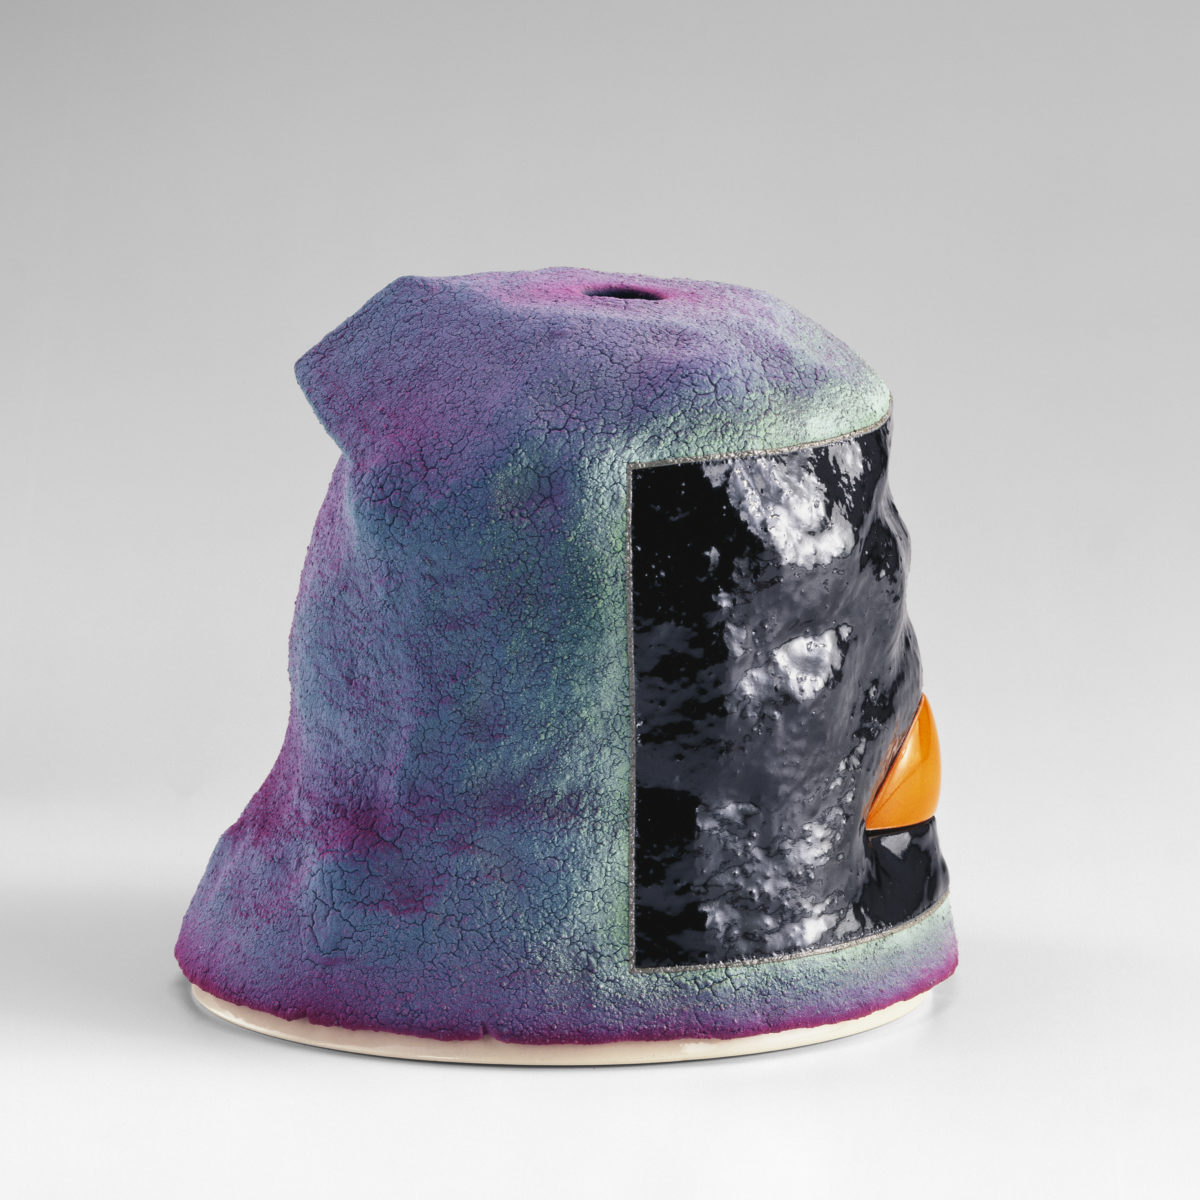 Midnight StrollEarthenware, glaze, underglaze5 x 5 1/4 x 5 1/4 inches1997